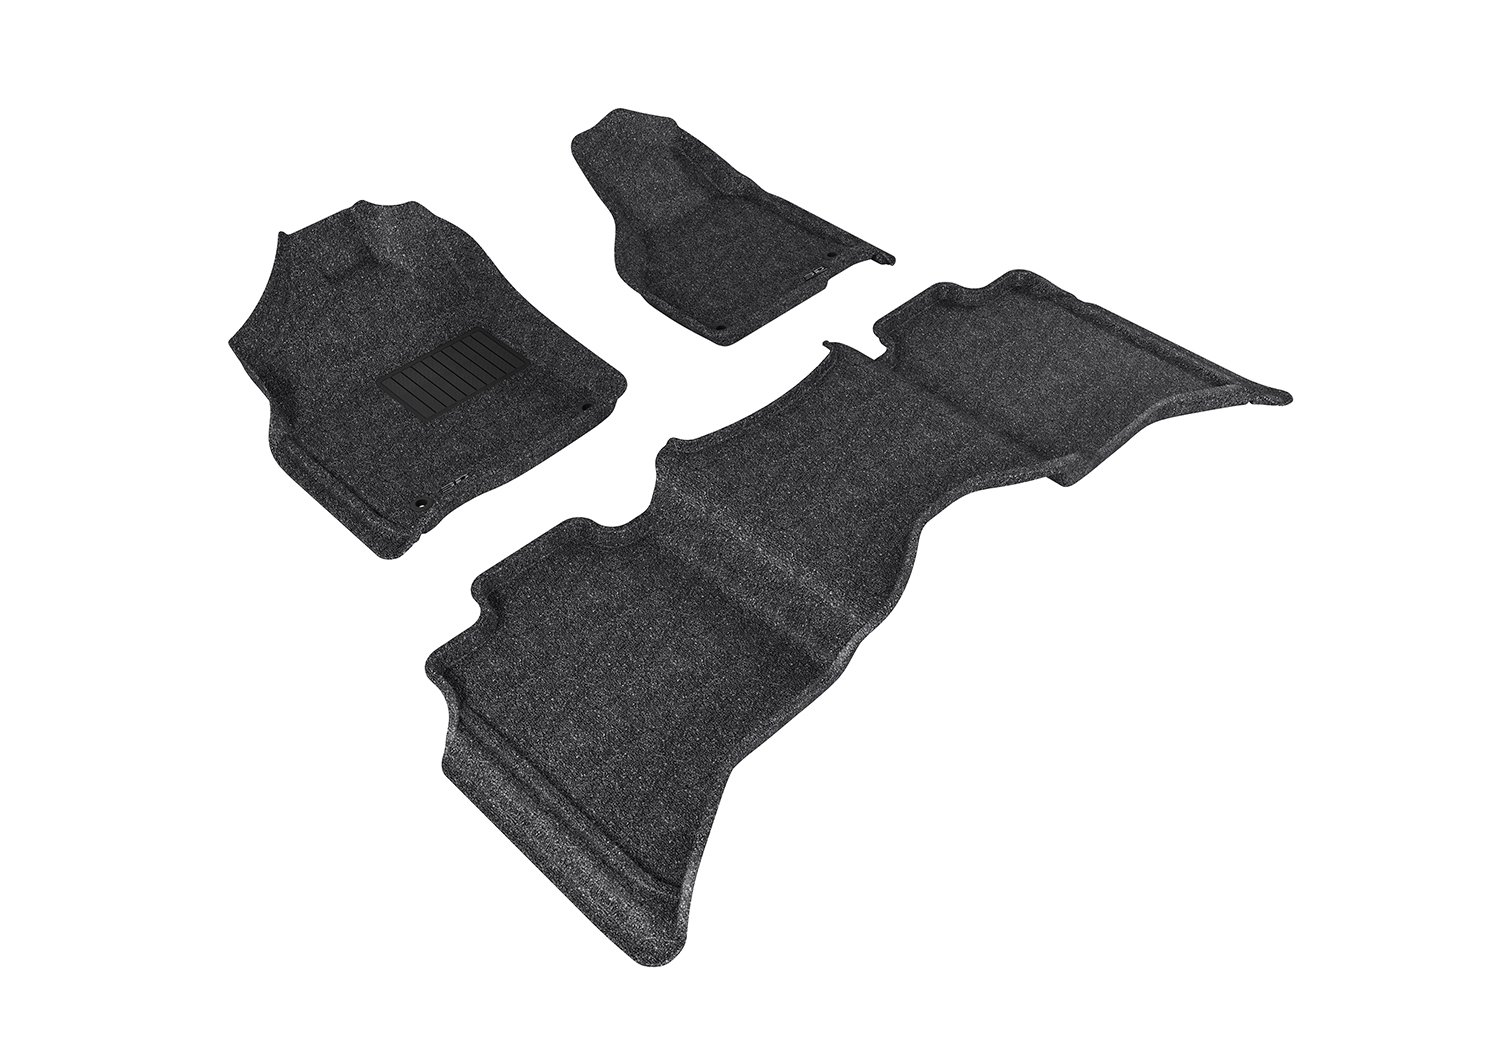 3D MAXpider L1DG02002209 Custom Fit Classic Series Floor Mats Black Complete Set For Dodge Ram 15//25//3500 Crew Cab Models